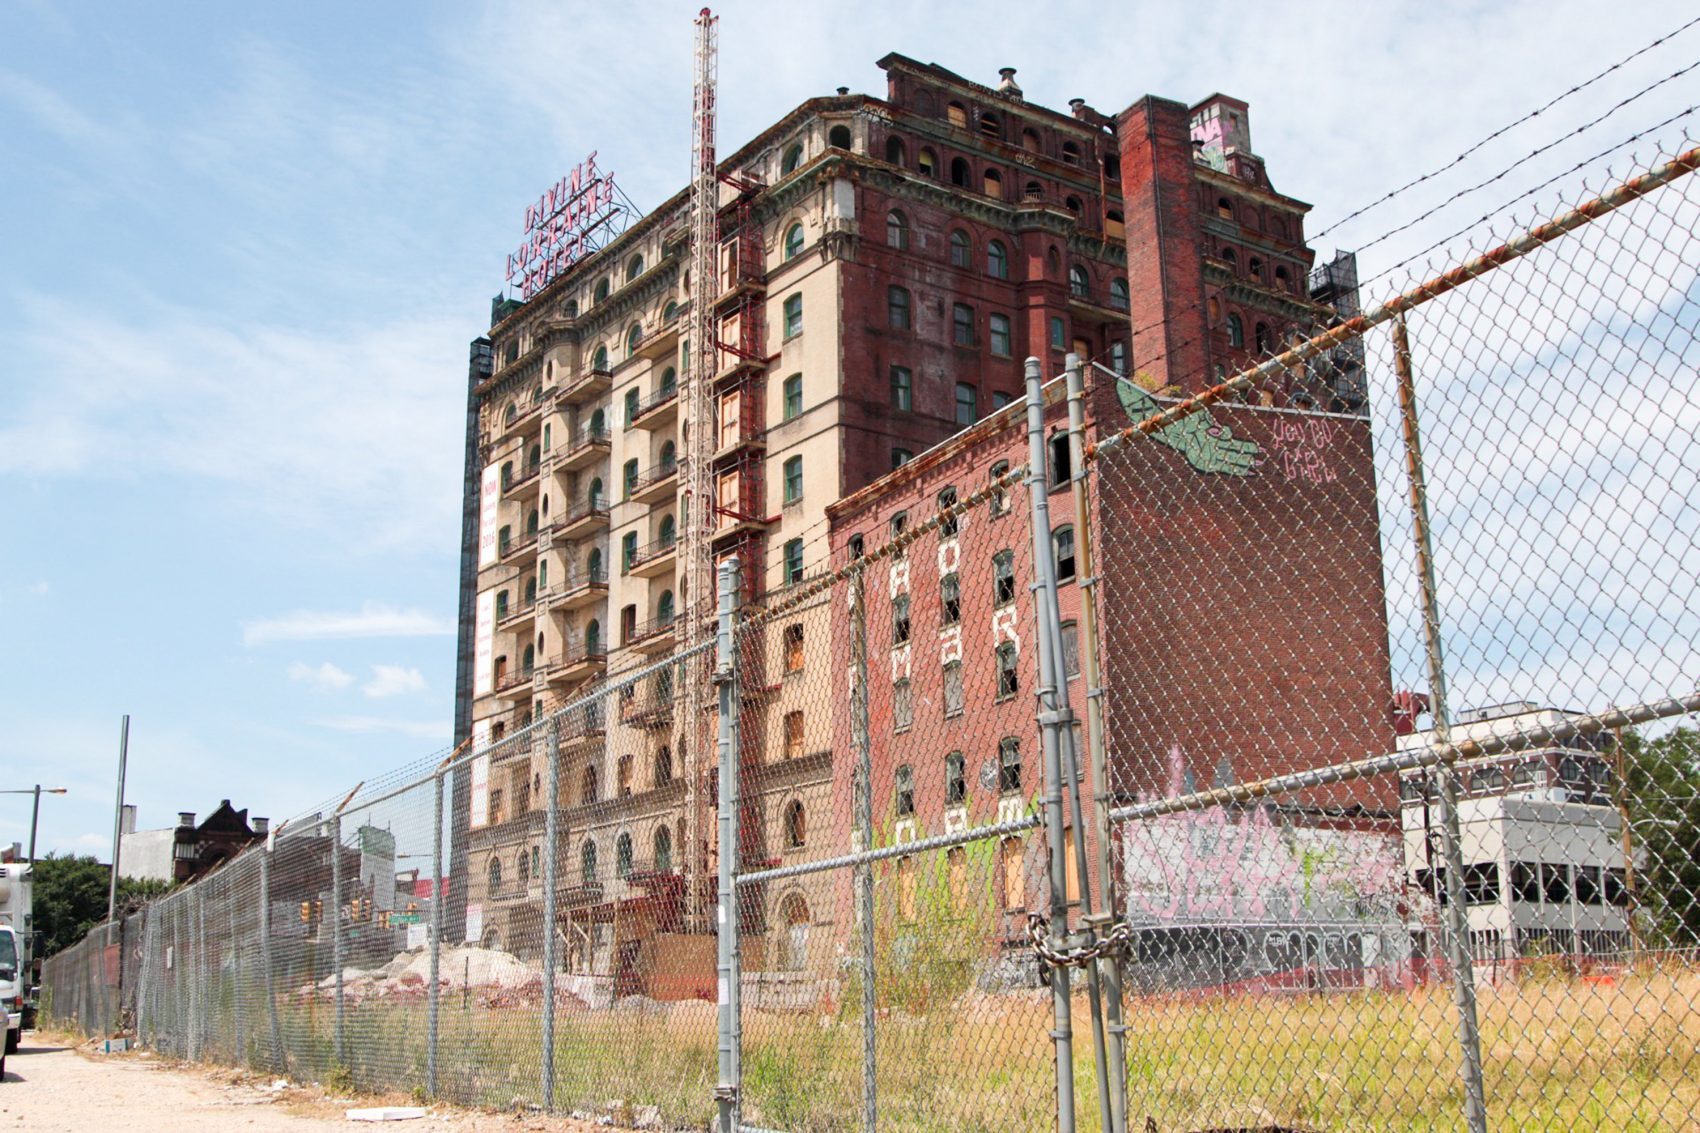 The Divine Lorraine Hotel, a late Victorian high-rise located on Broad Street and Fairmount Avenue in North Philadelphia. (Dean Russell/Here & Now)